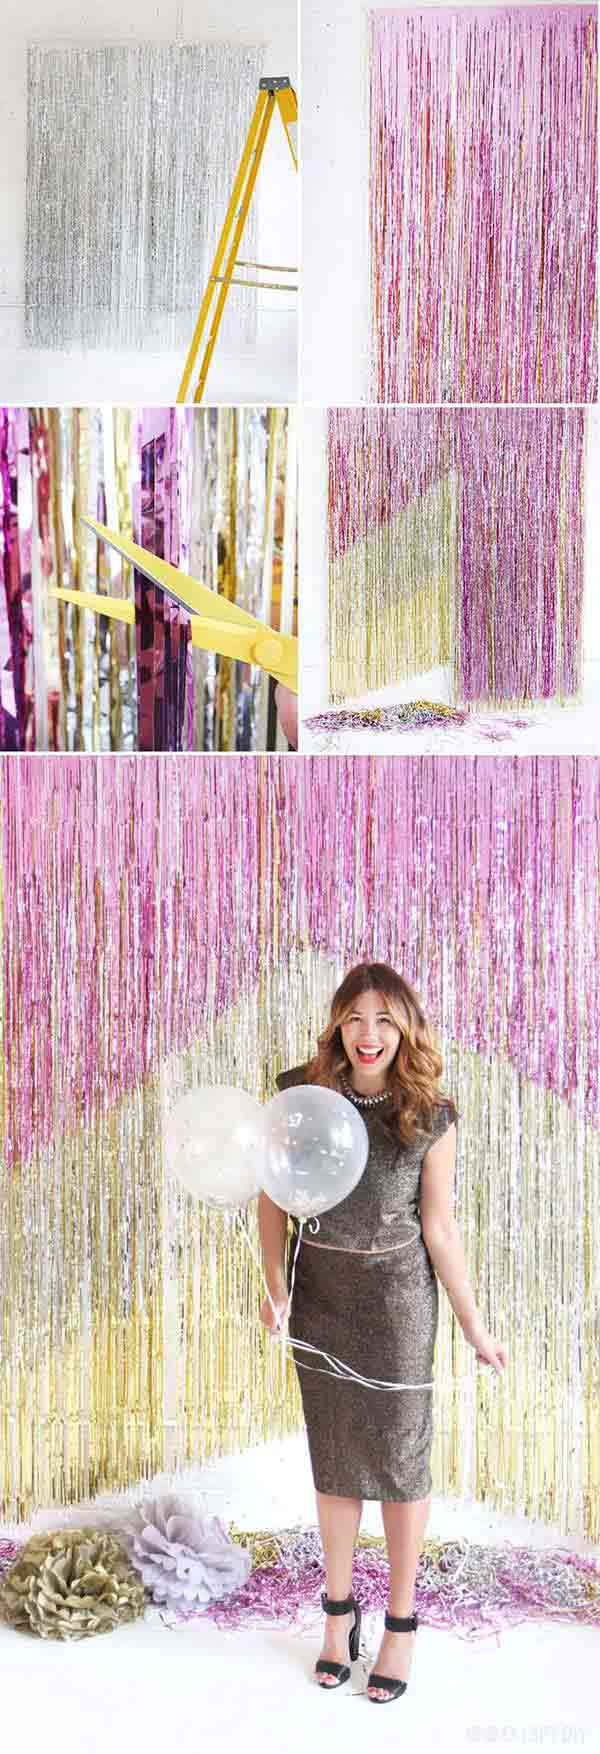 diy-new-year-eve-decorations-13-2